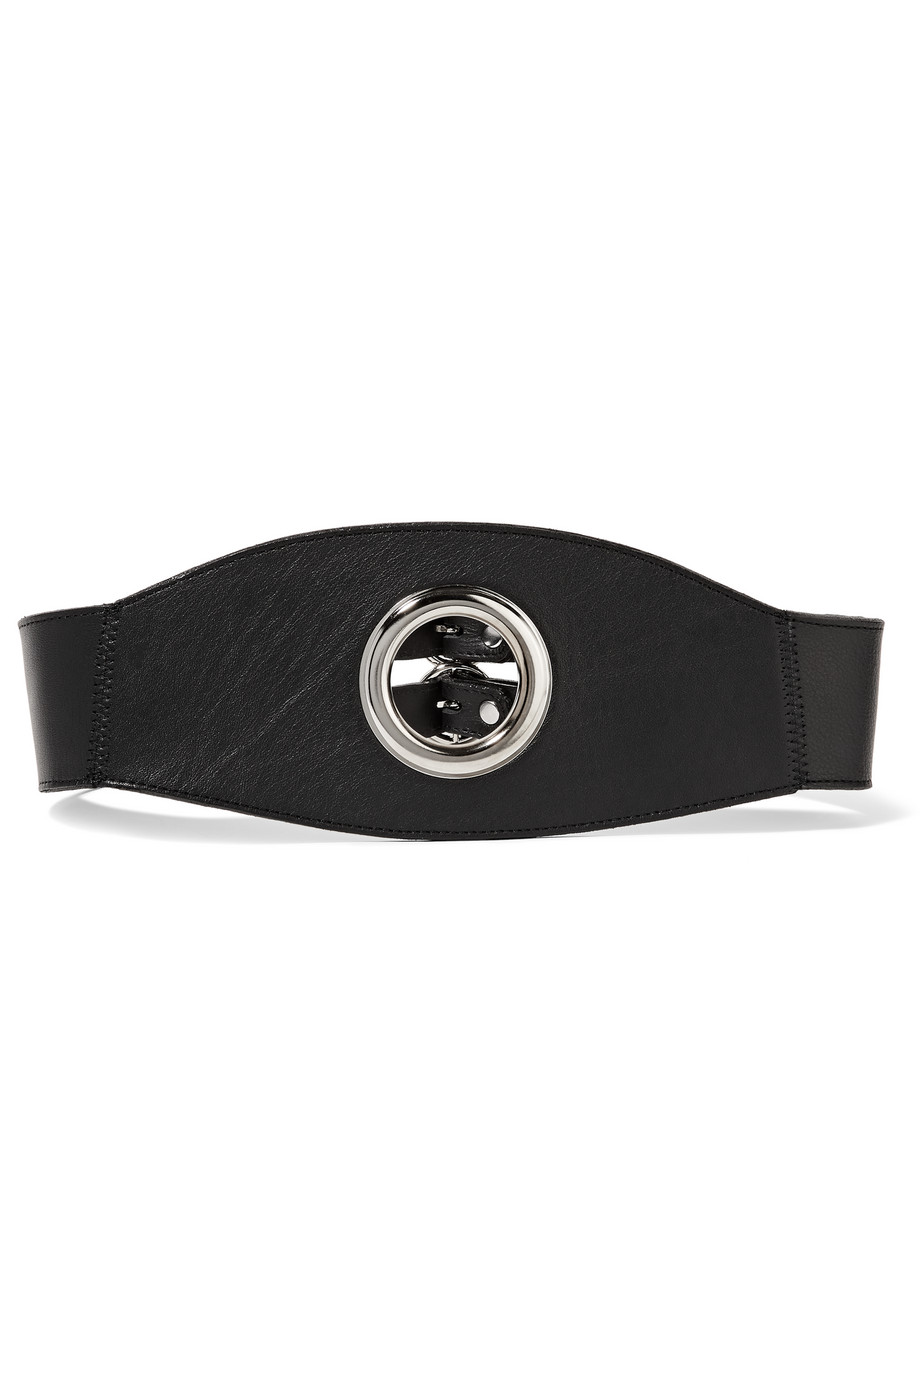 Eyelet Cincher Leather Waist Belt, Black, Women's